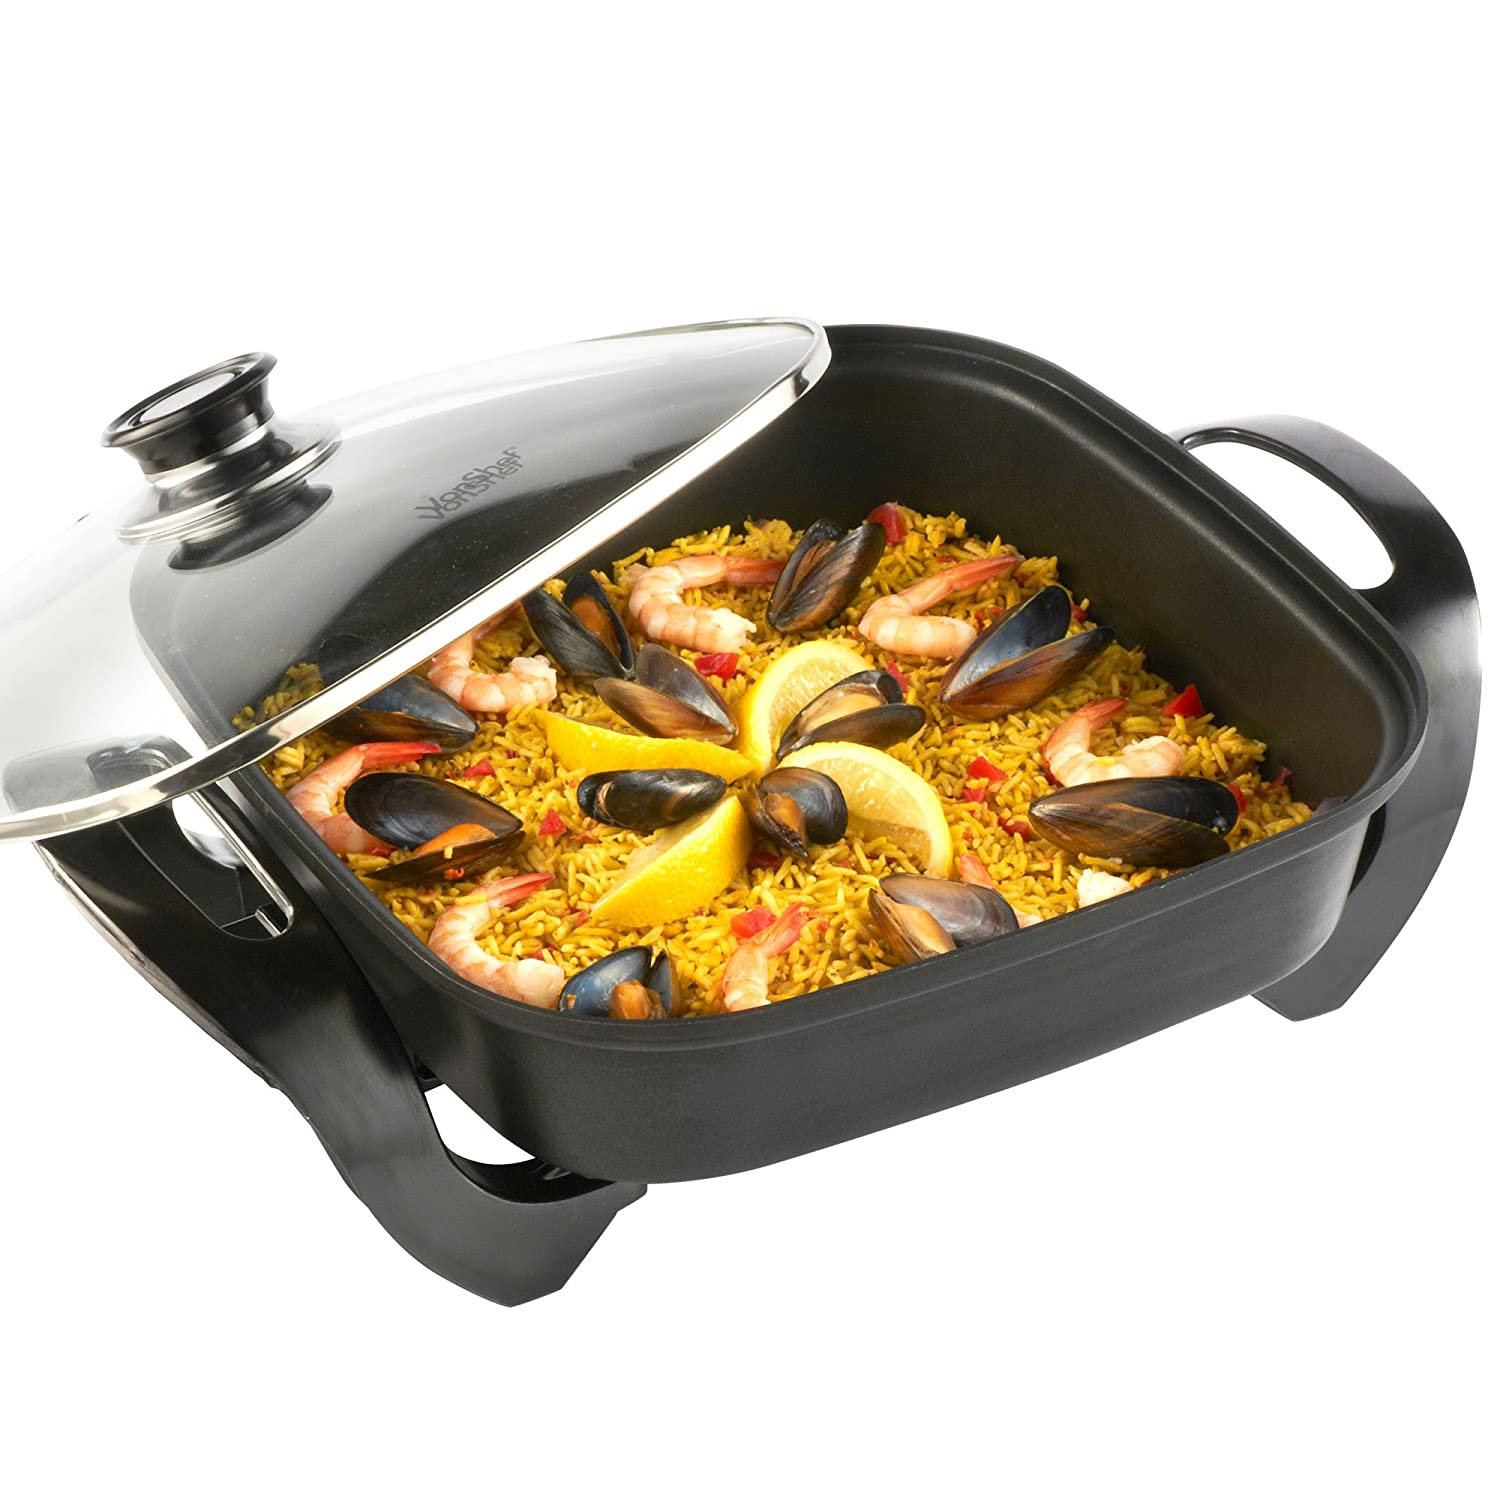 Top 10 Best Electric Skillets For Roasting Chicken 2018